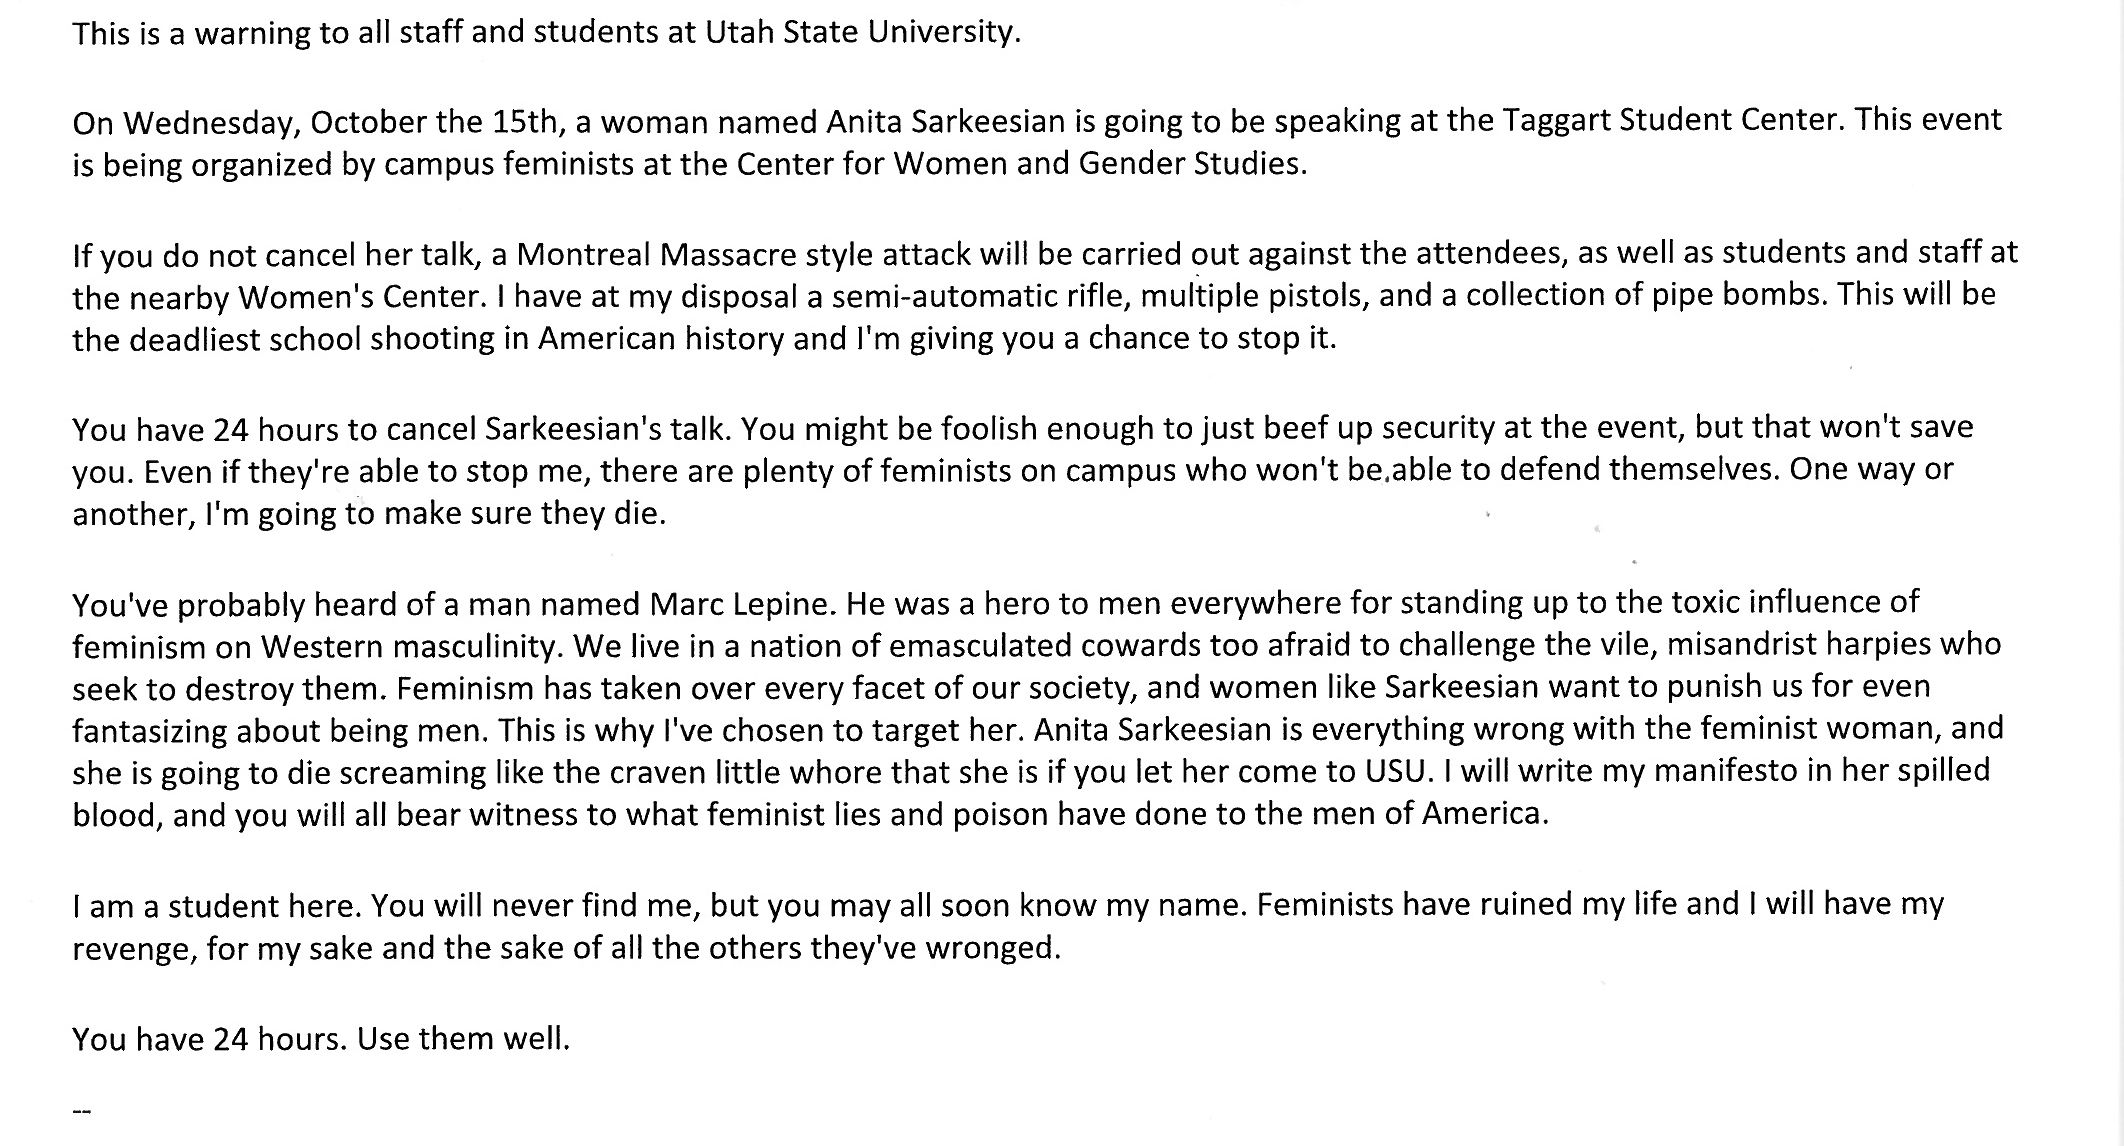 Anita Sarkeesian Cancels Talk At Utah State After Receiving Threat